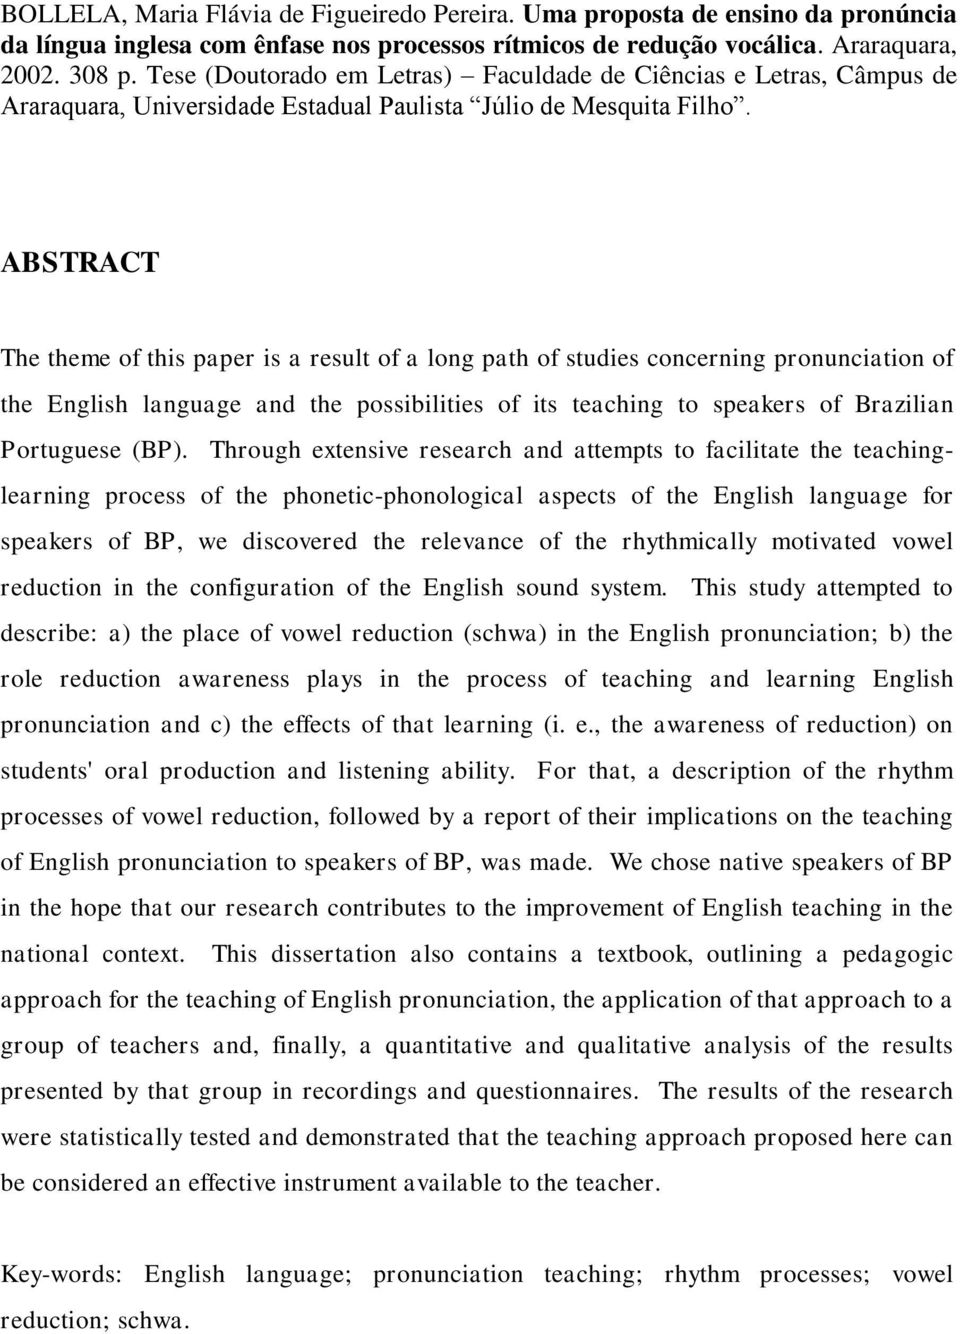 ABSTRACT The theme of this paper is a result of a long path of studies concerning pronunciation of the English language and the possibilities of its teaching to speakers of Brazilian Portuguese (BP).